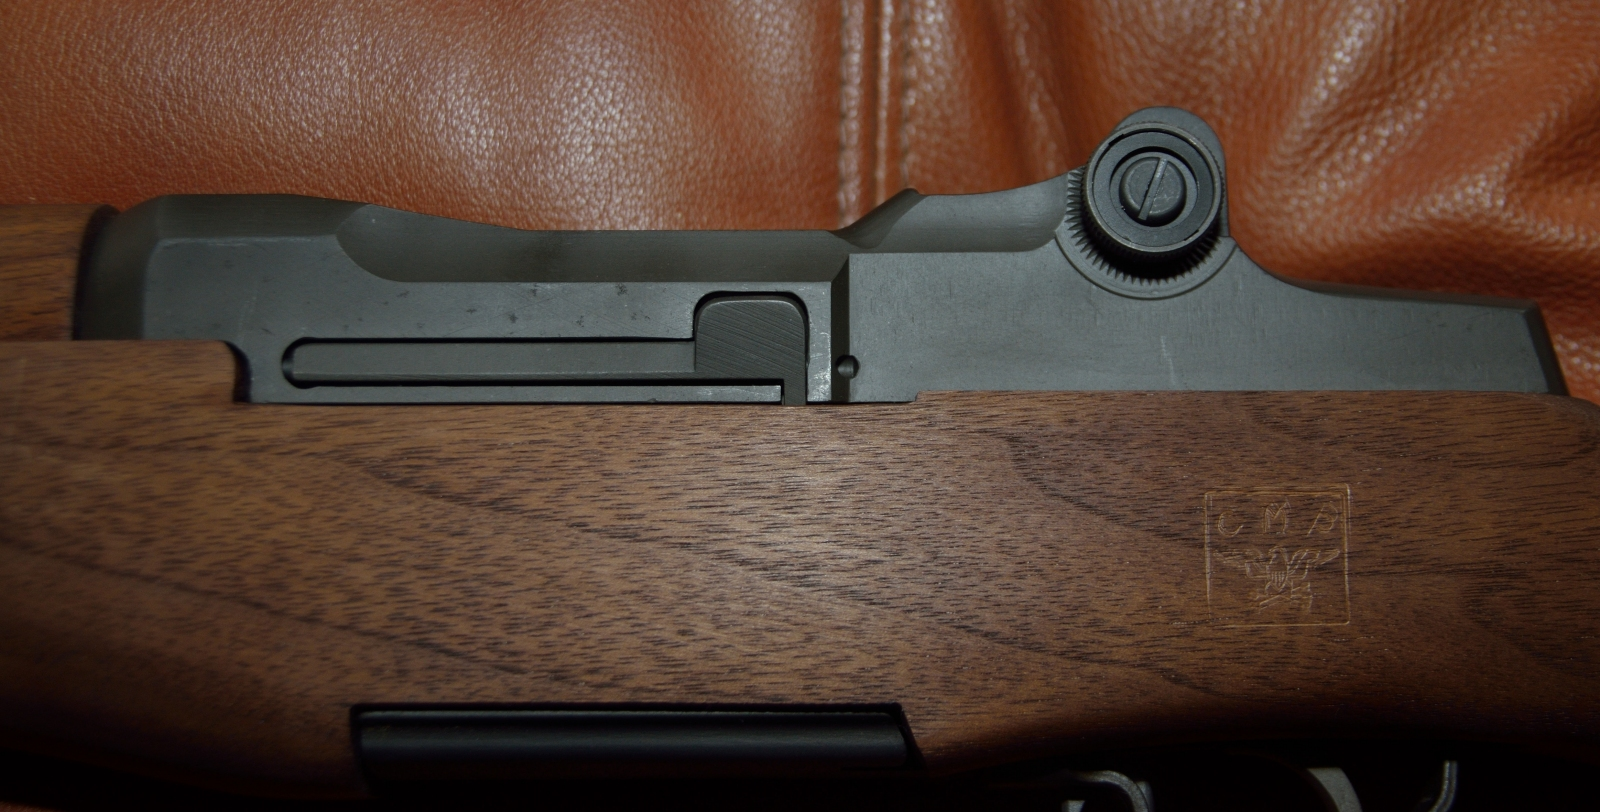 M1 Garand left side of receiver showing CMP Cartouche